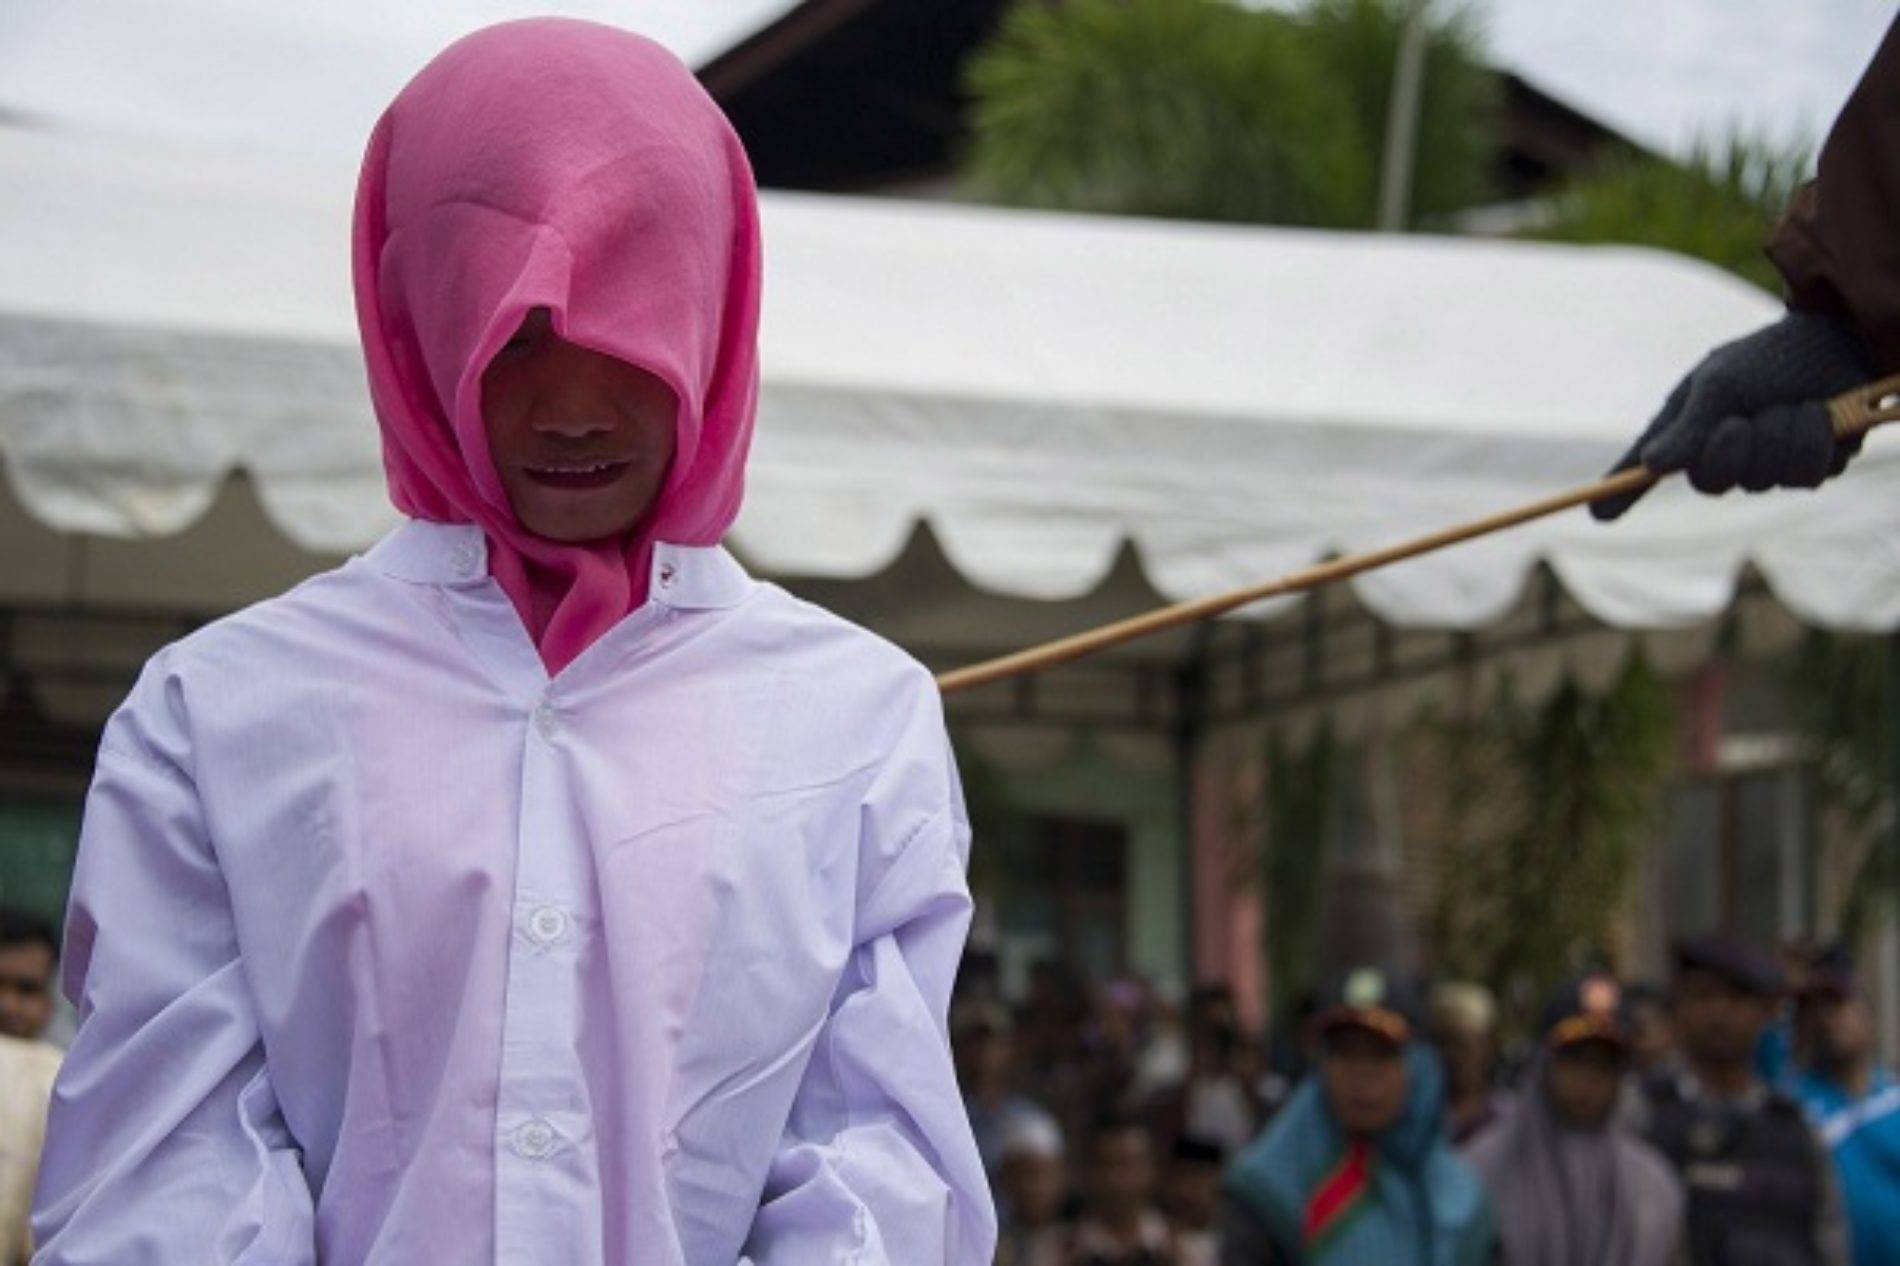 Tourists could now be whipped for being gay in Indonesia